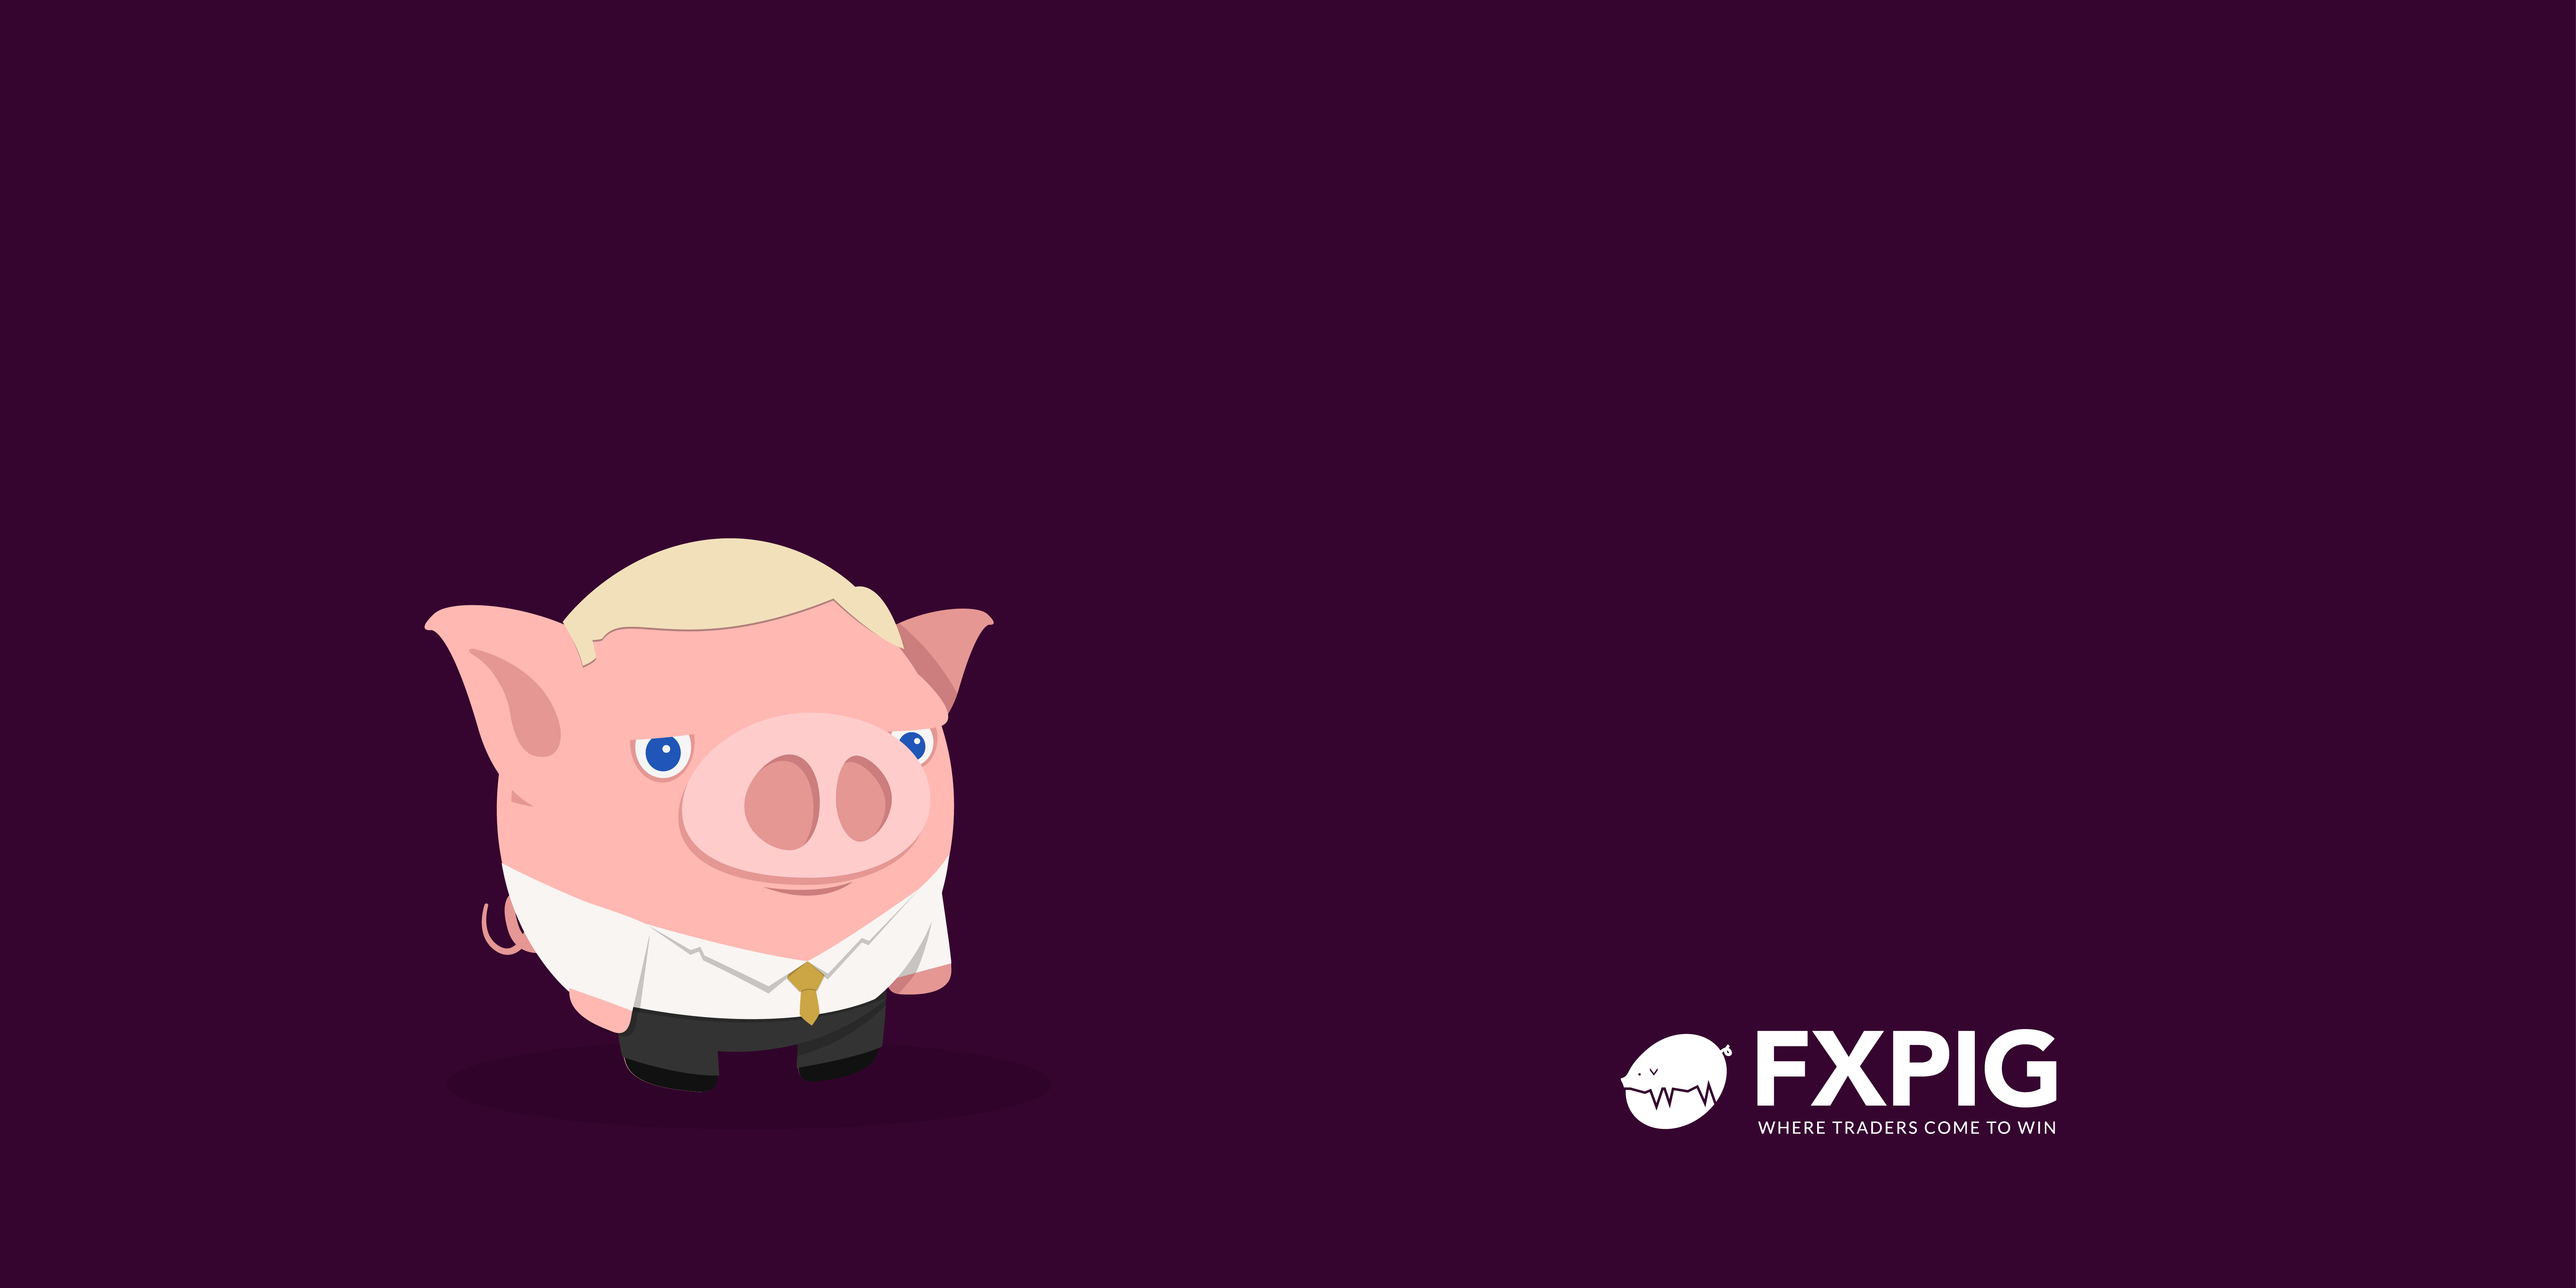 FOREX_Probable-risk-reduction_trading-quote_Seykota_FXPIG